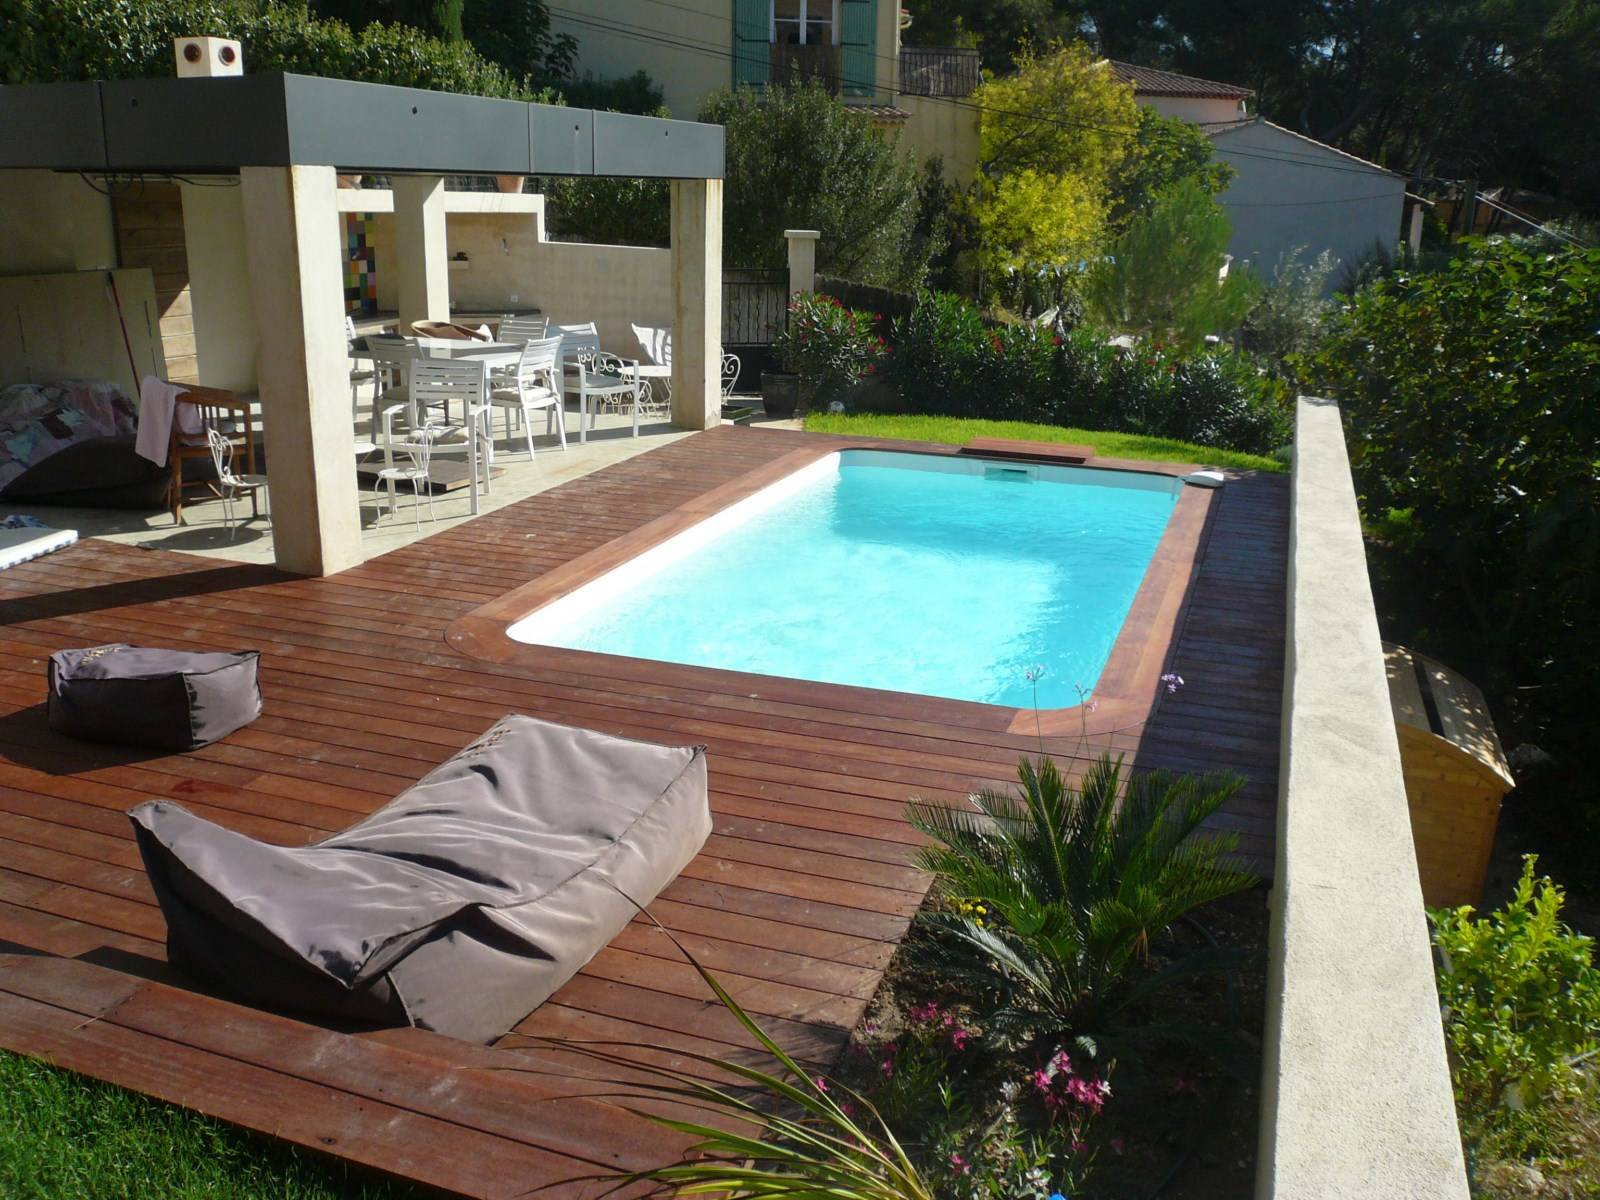 faire installer une piscine coque france piscine composite avignon france piscines composites. Black Bedroom Furniture Sets. Home Design Ideas